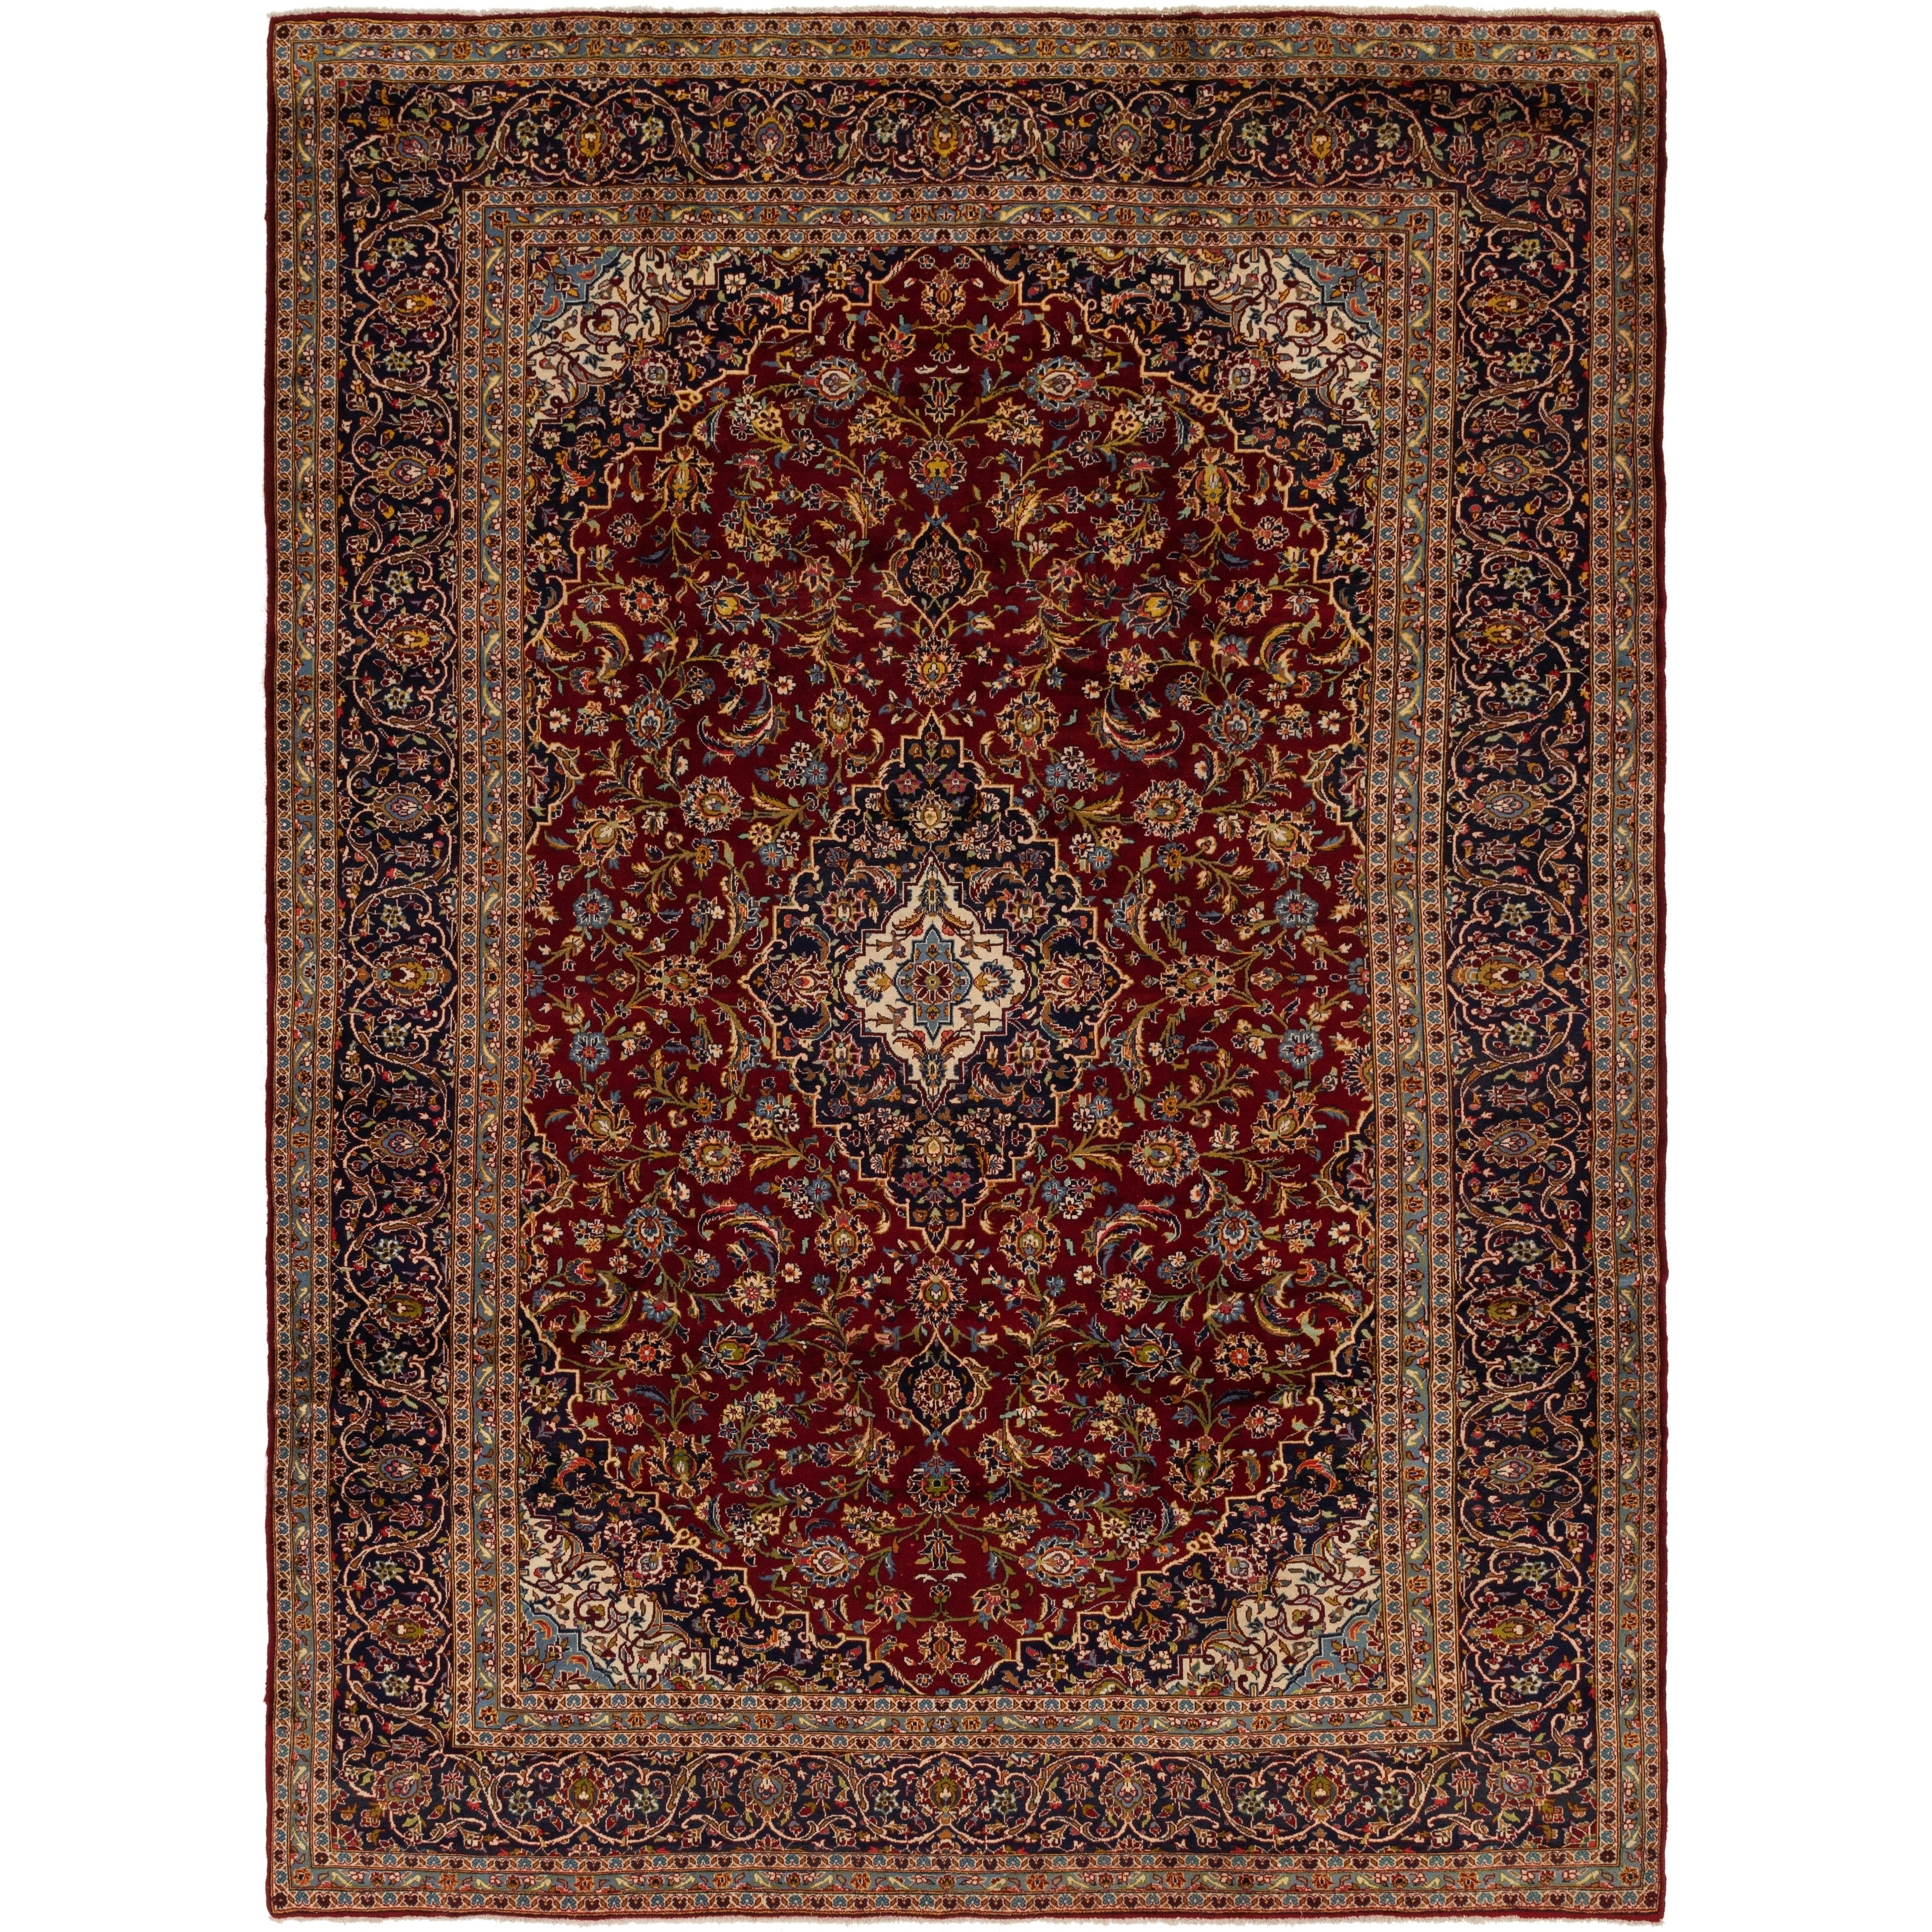 Hand Knotted Kashan Semi Antique Wool Area Rug - 9 6 x 13 3 (Red - 9 6 x 13 3)